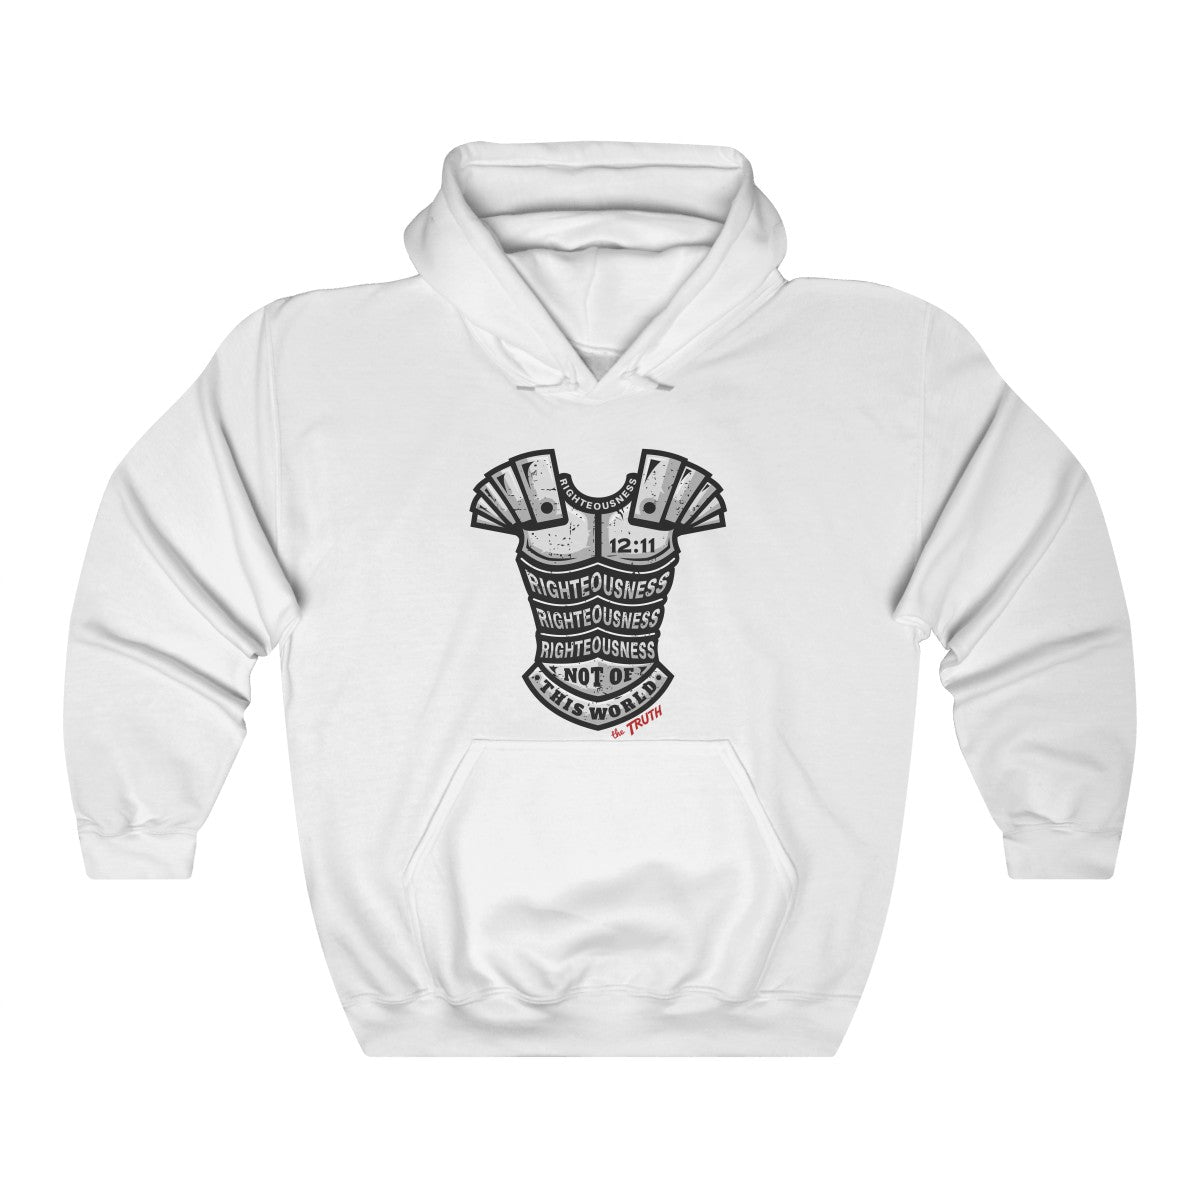 Put on the Breastplate of Righteousness- Discover an approach to witnessing using this Christian Hoodie so easy anyone can do it.